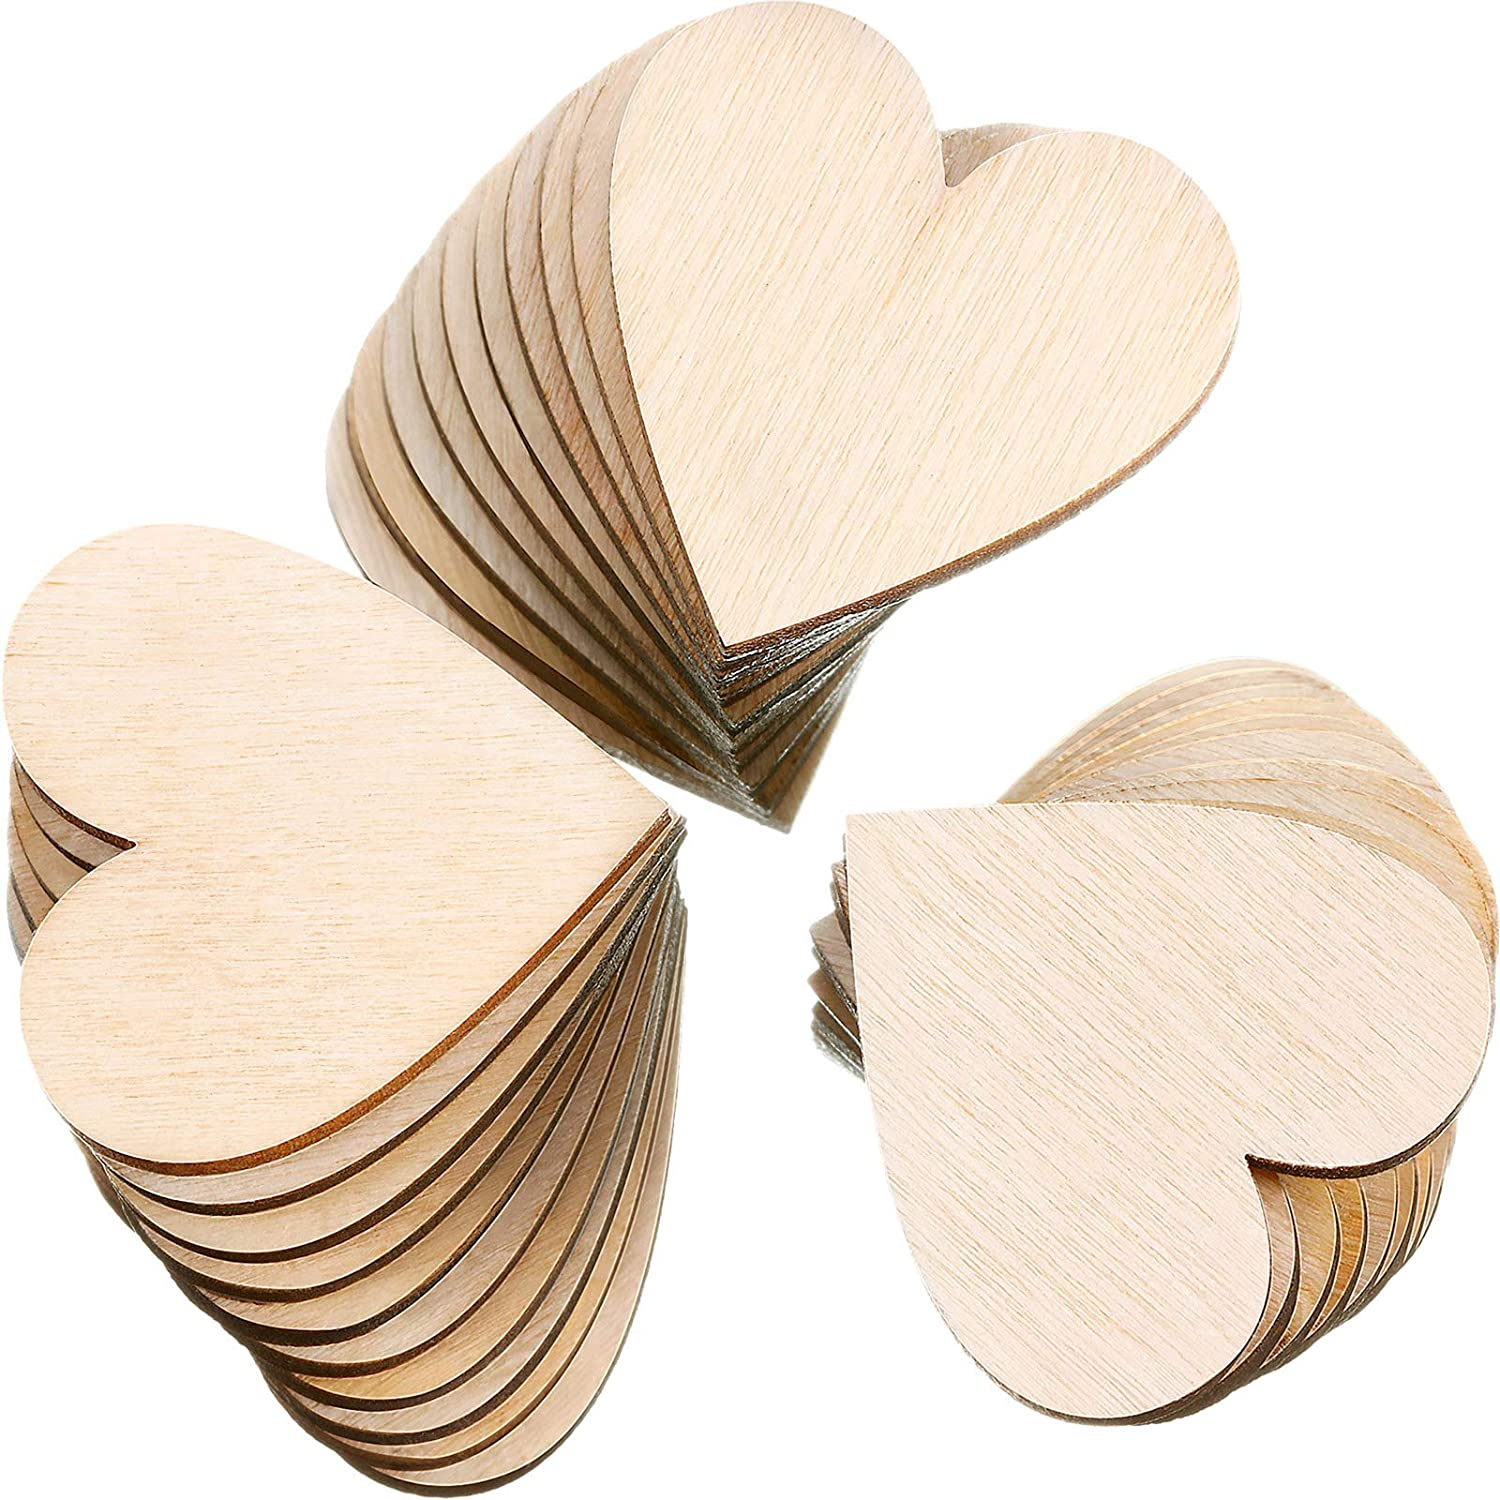 Wooden Heart Cutouts for Crafts 10 inch Great DIY D/écor for Valentines Day and Special Occasion Pack of 1 Unfinished Wood Hearts by Woodpeckers 1//4 inch Thick